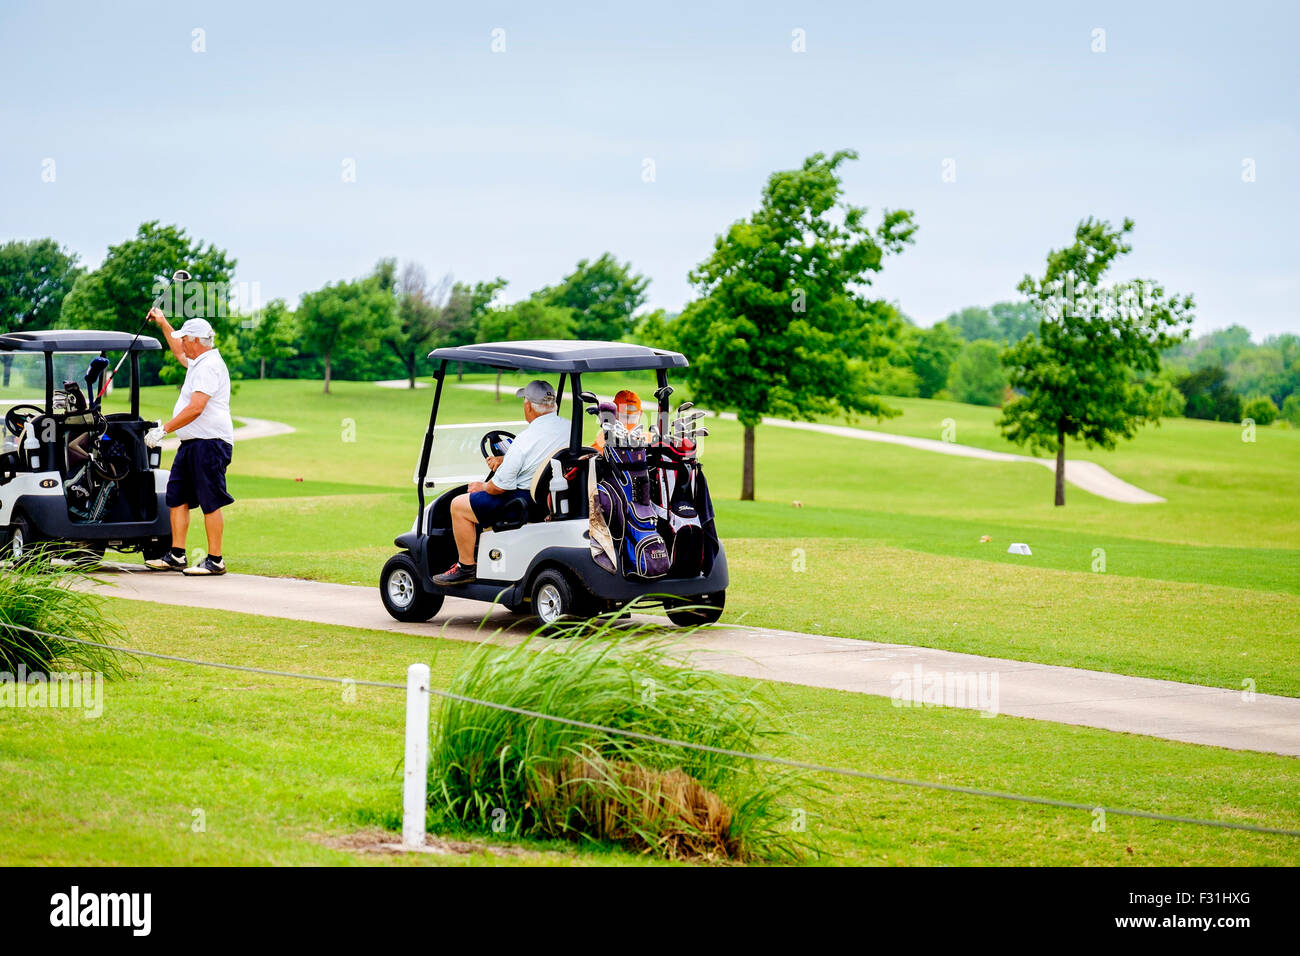 Men ride in golf carts on a cart path during a tournament at Hefner Golf course in Oklahoma City, Oklahoma, USA. - Stock Image